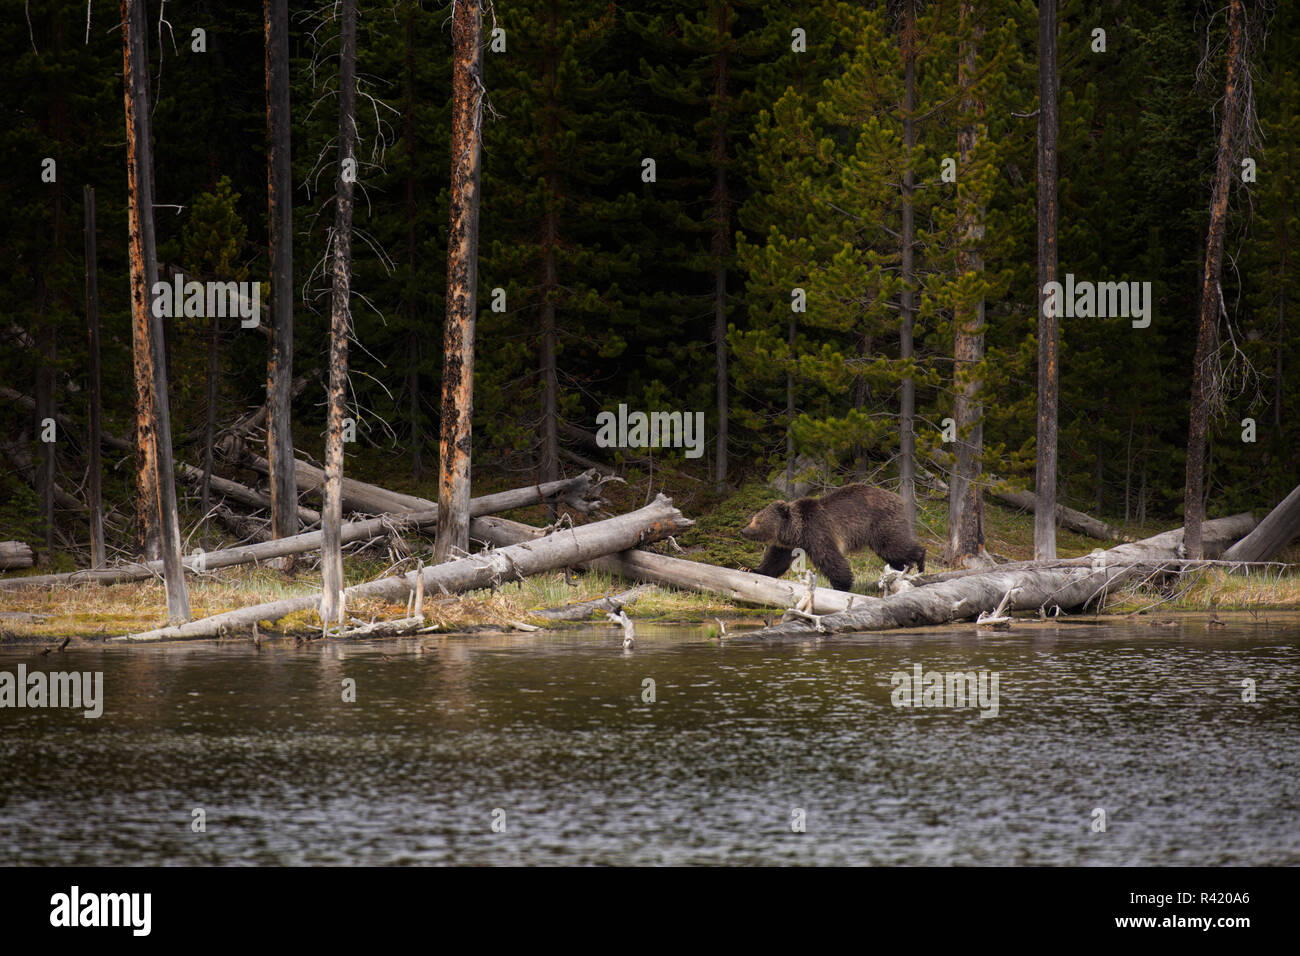 USA, Wyoming, Yellowstone National Park. Grizzly Bear walks along a lake shore. Credit as: Don Grall / Jaynes Gallery / DanitaDelimont. com - Stock Image